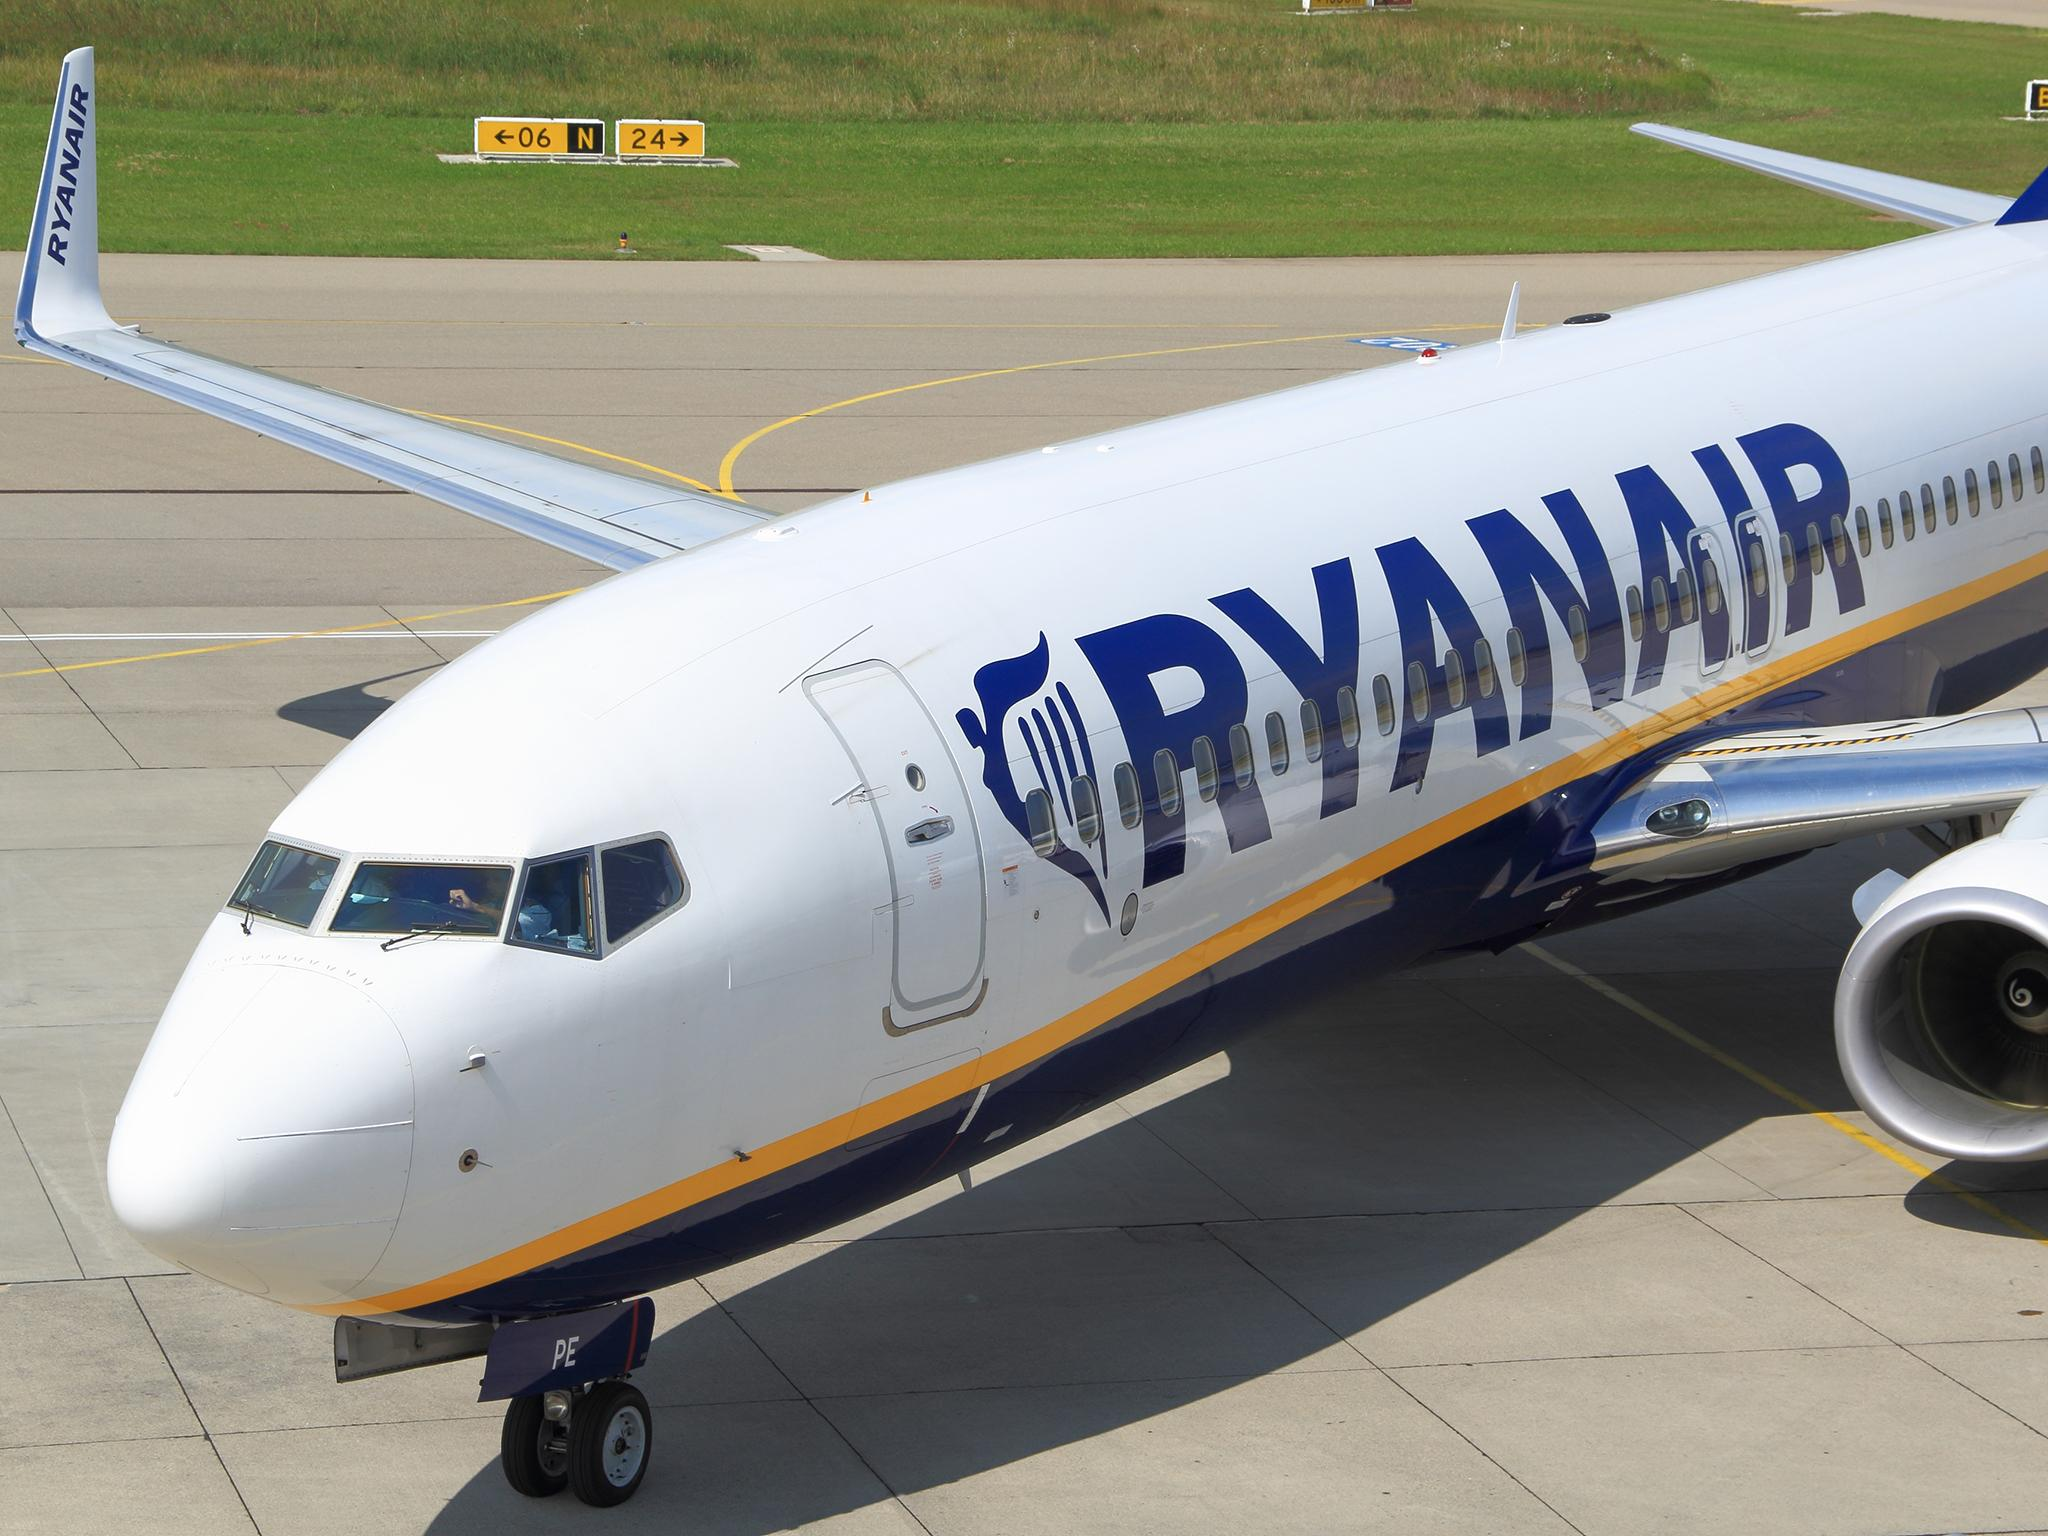 Ryanair strikes: Flights to be disrupted in January as Spanish unions announce walkout